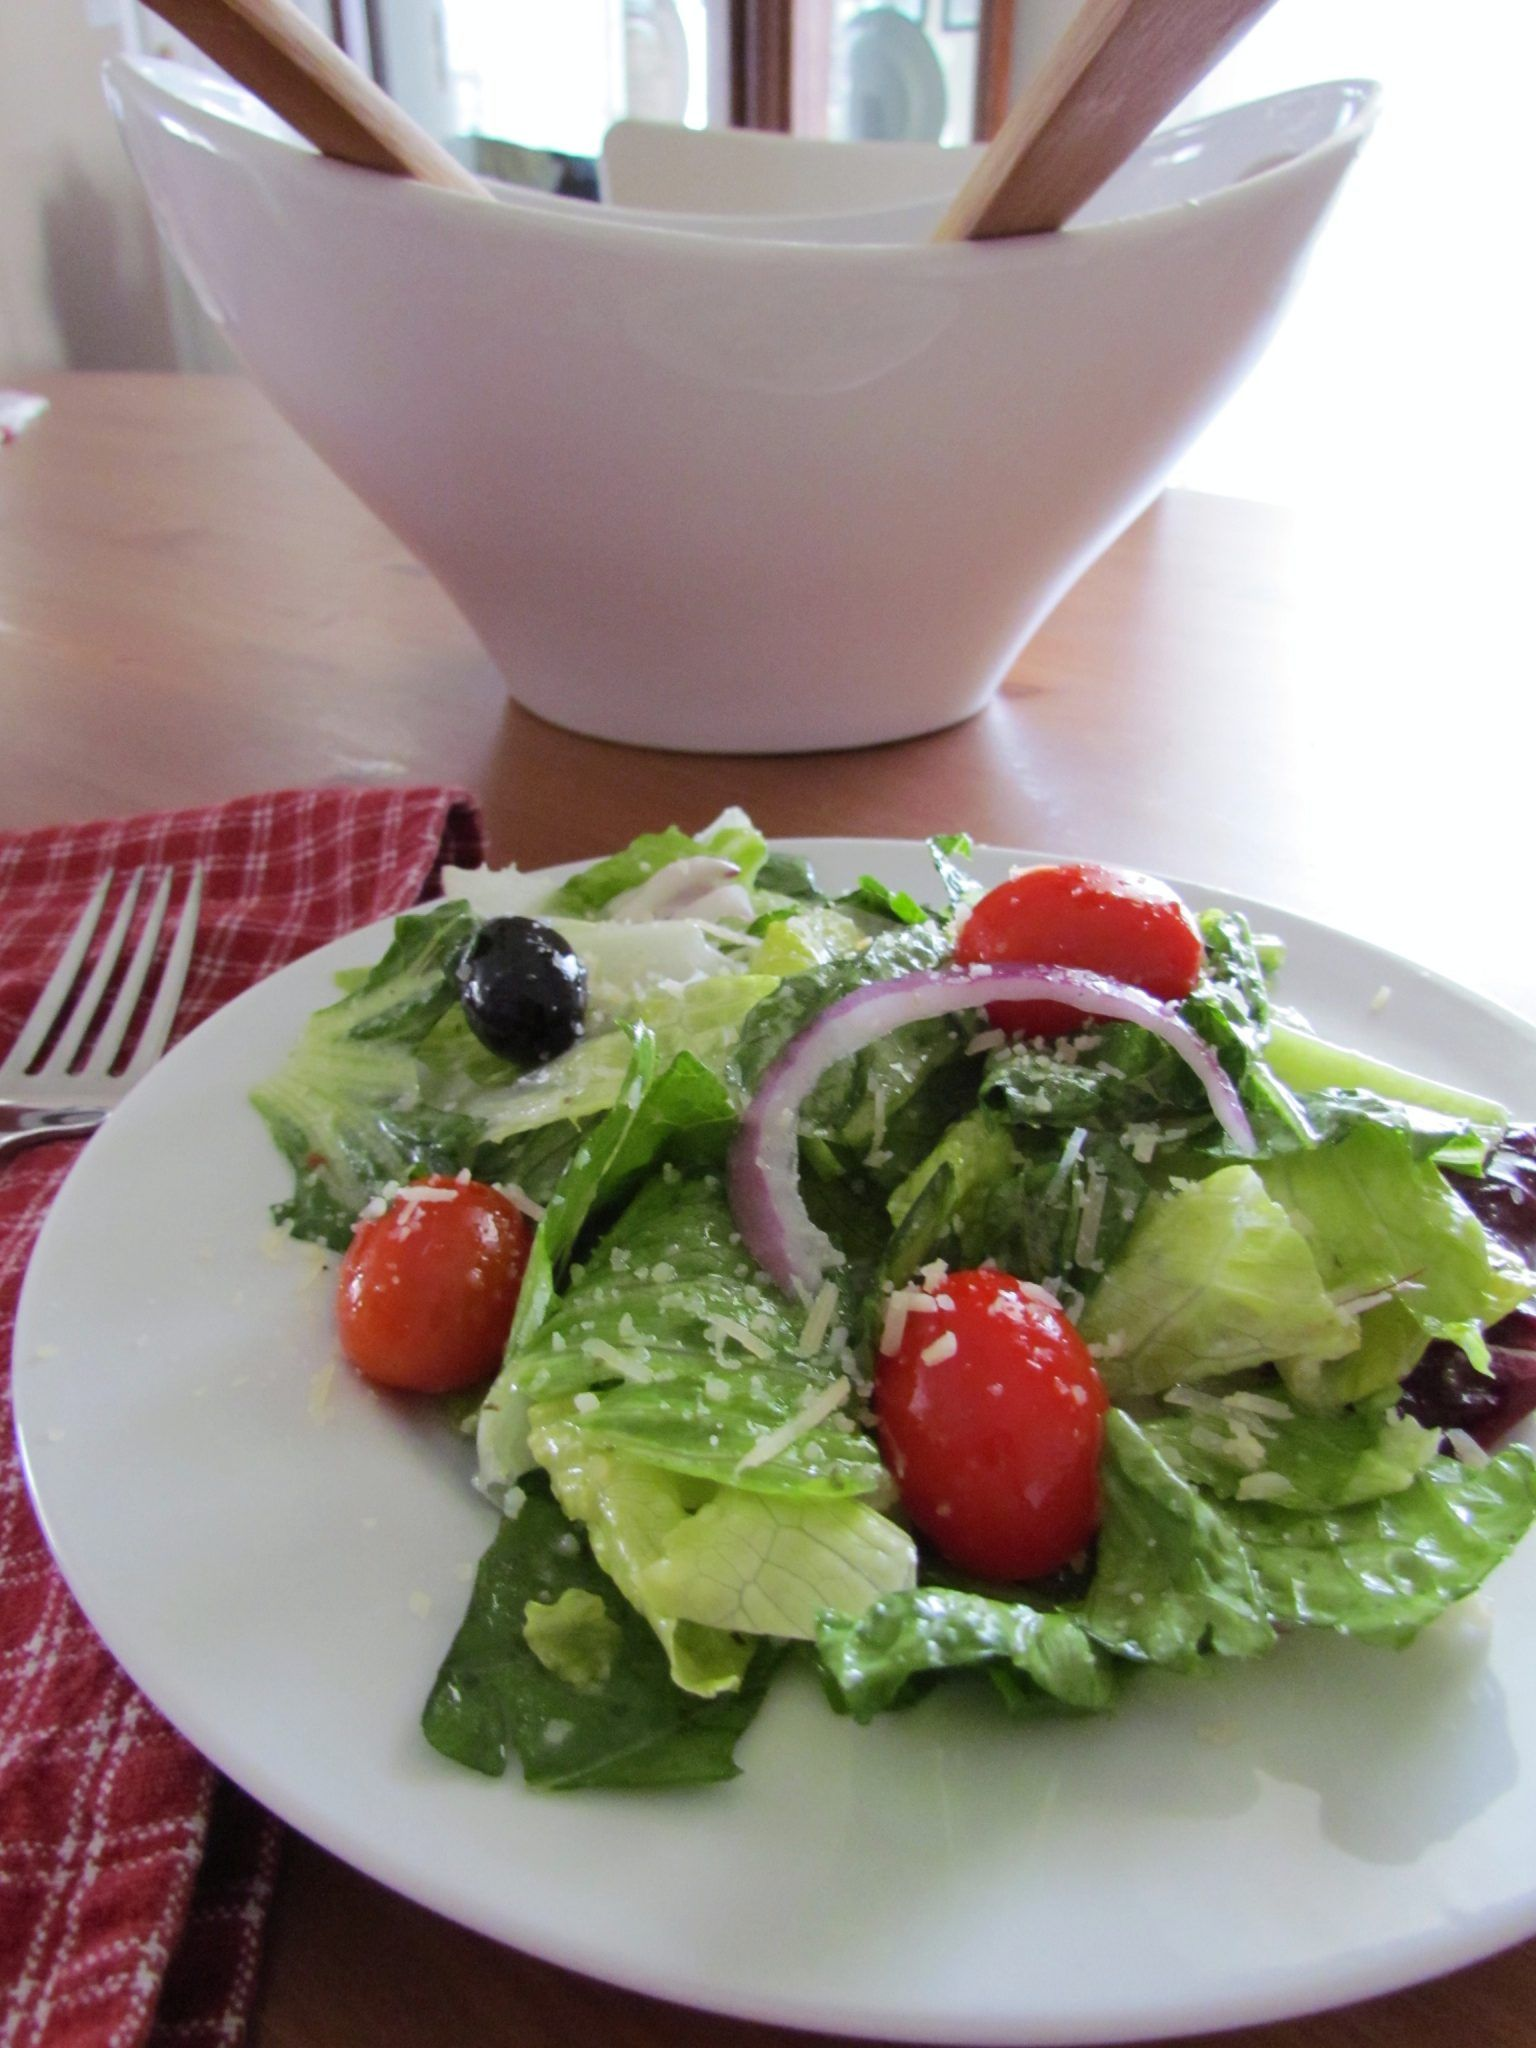 Olive Garden Salad Copycat Recipe Food I've made in